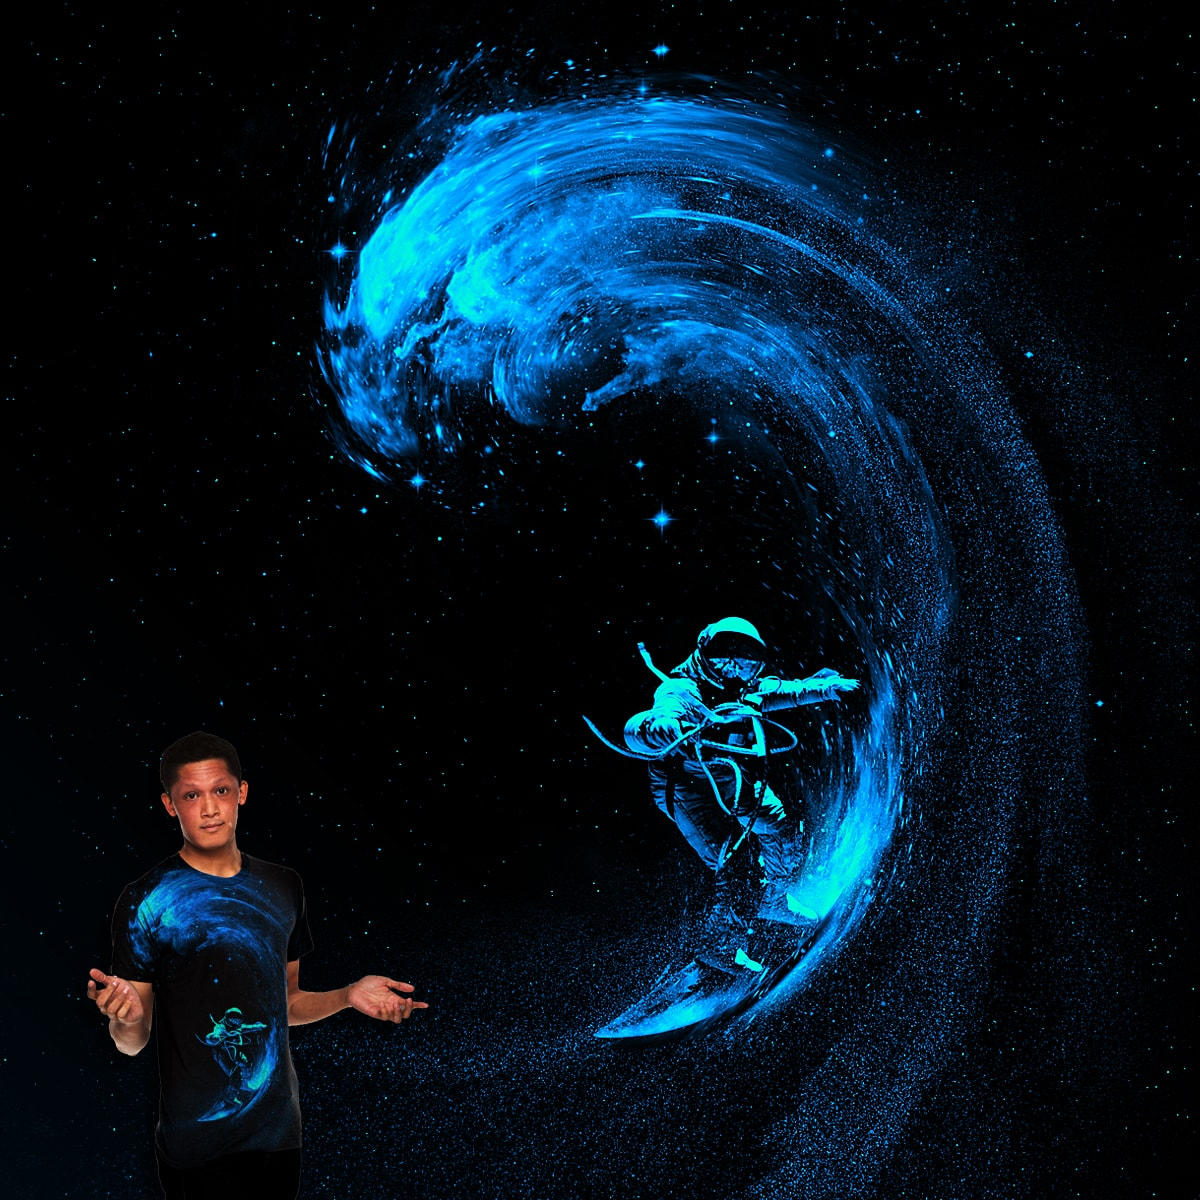 Space Surfing by nicebleed on Threadless